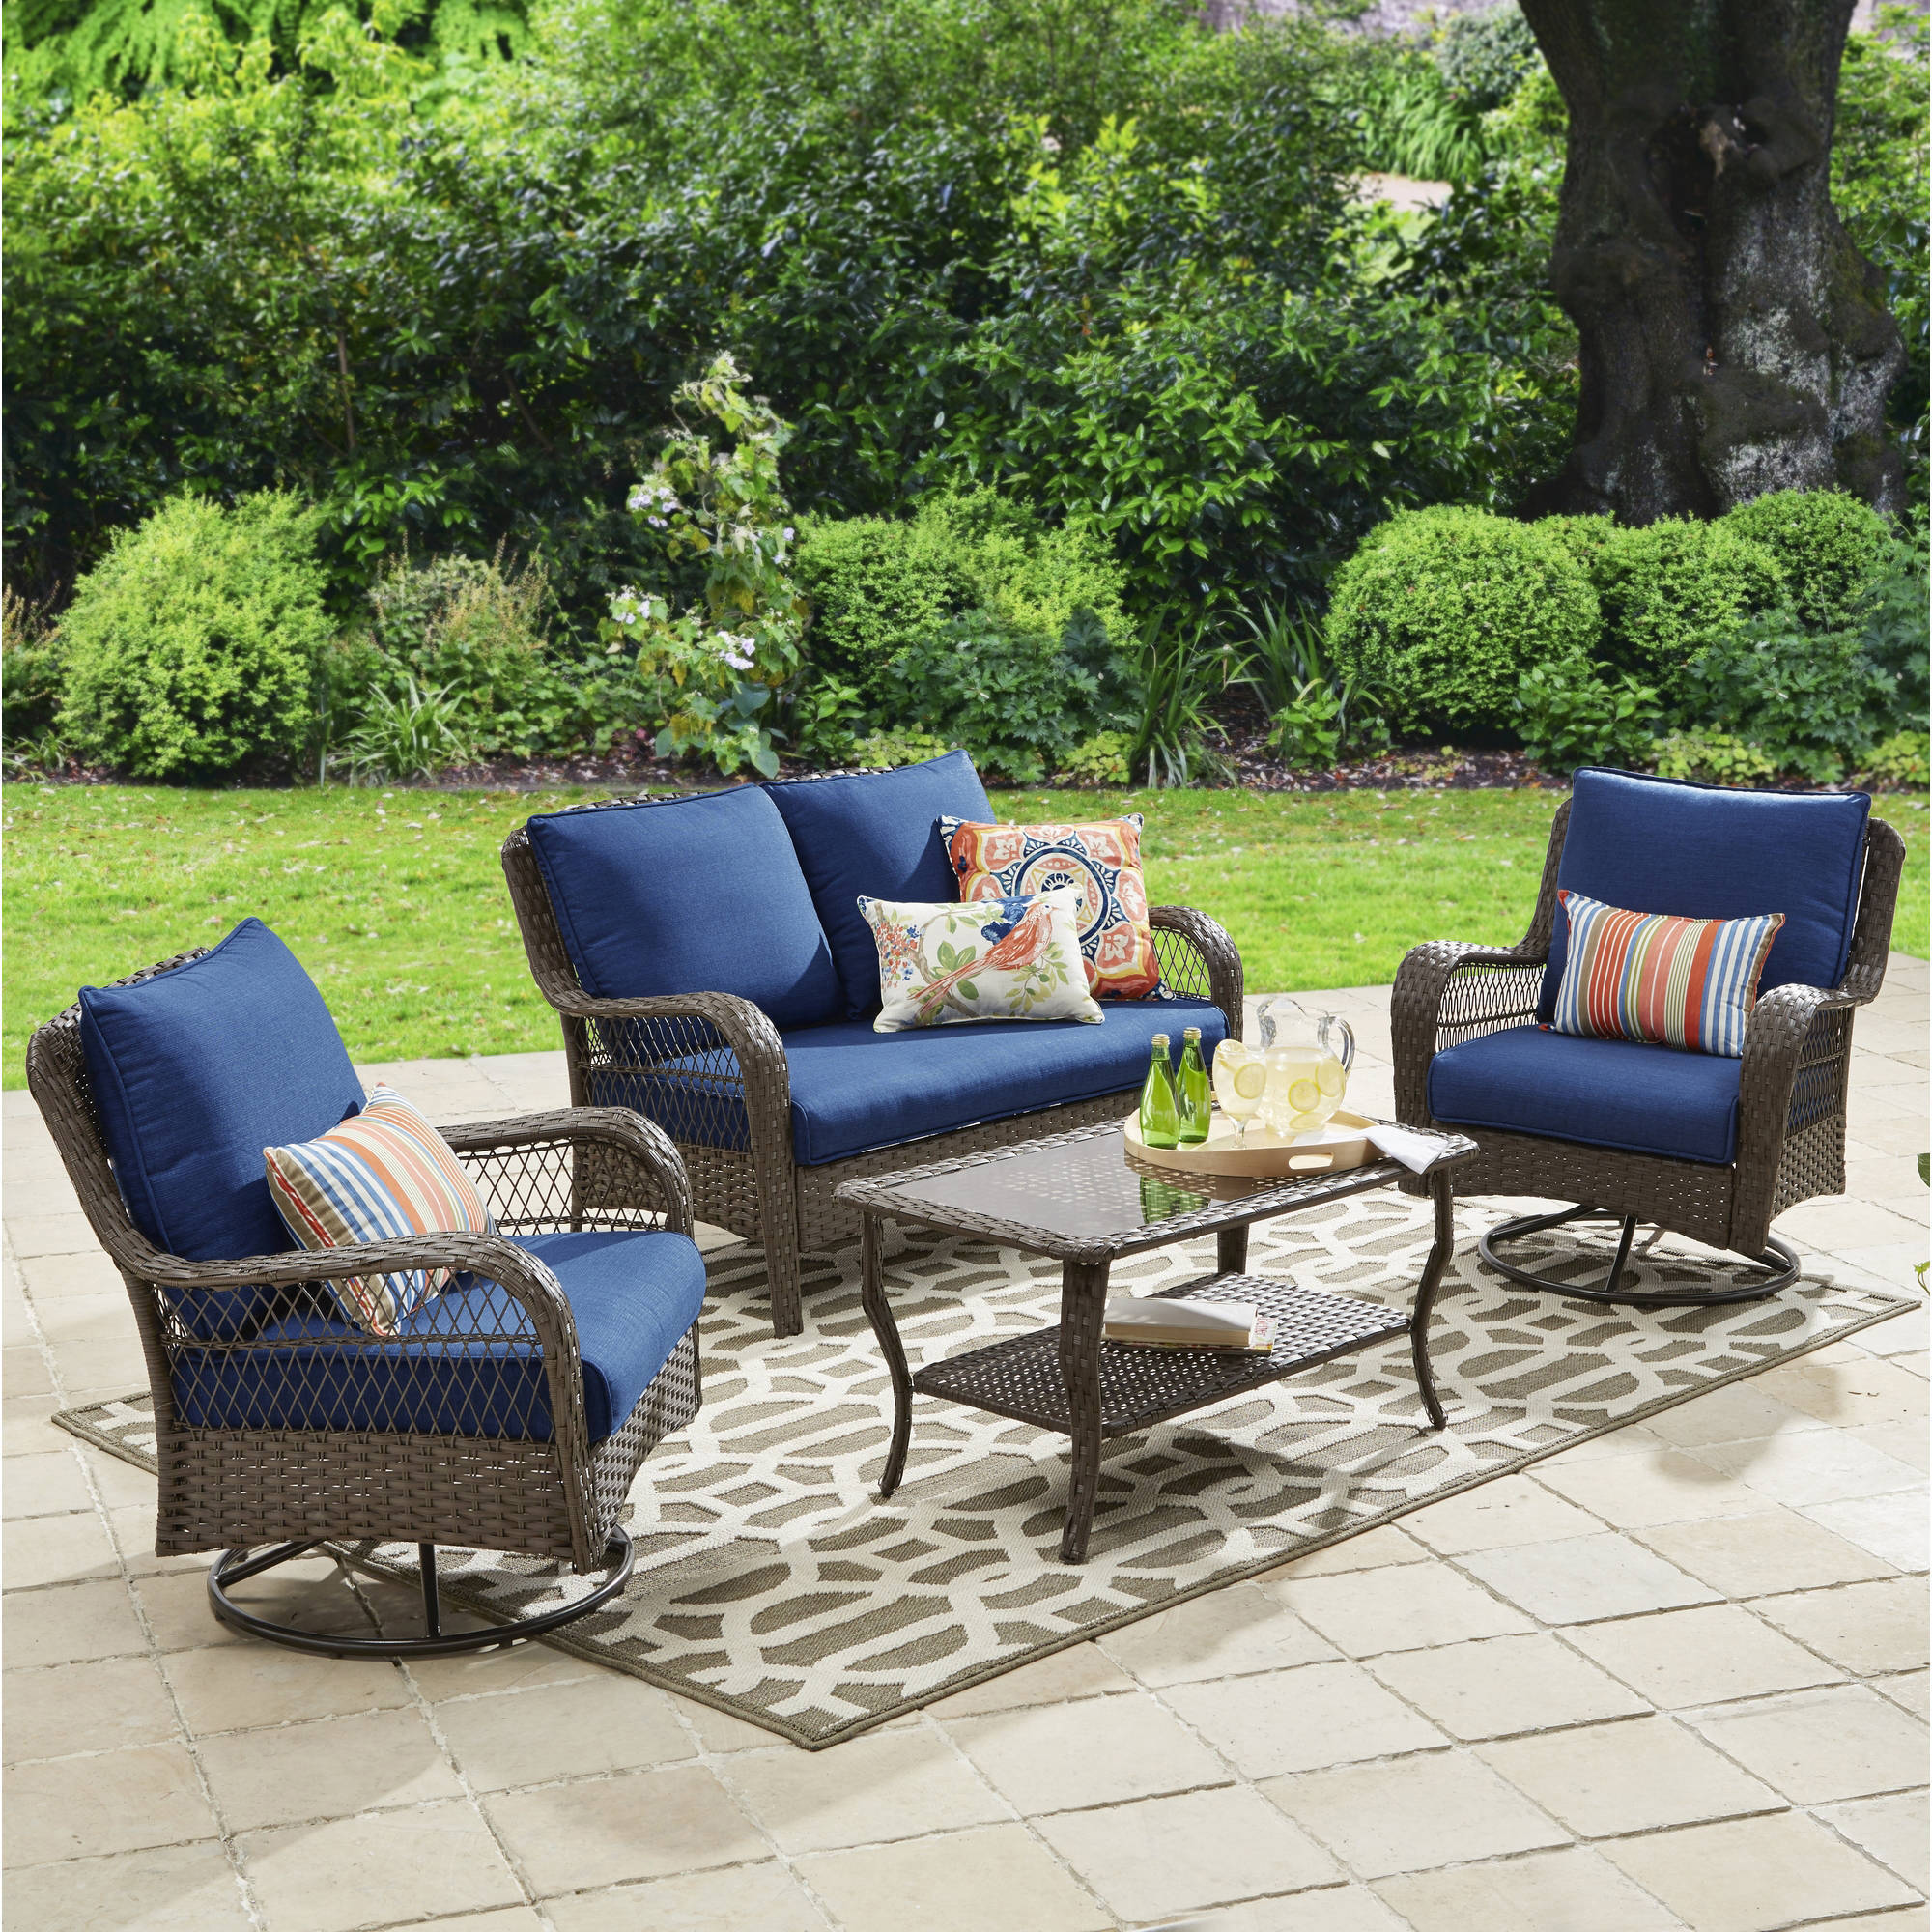 Better Homes and Gardens Colebrook 4 Piece Outdoor Conversation Set     Better Homes and Gardens Colebrook 4 Piece Outdoor Conversation Set    Walmart com